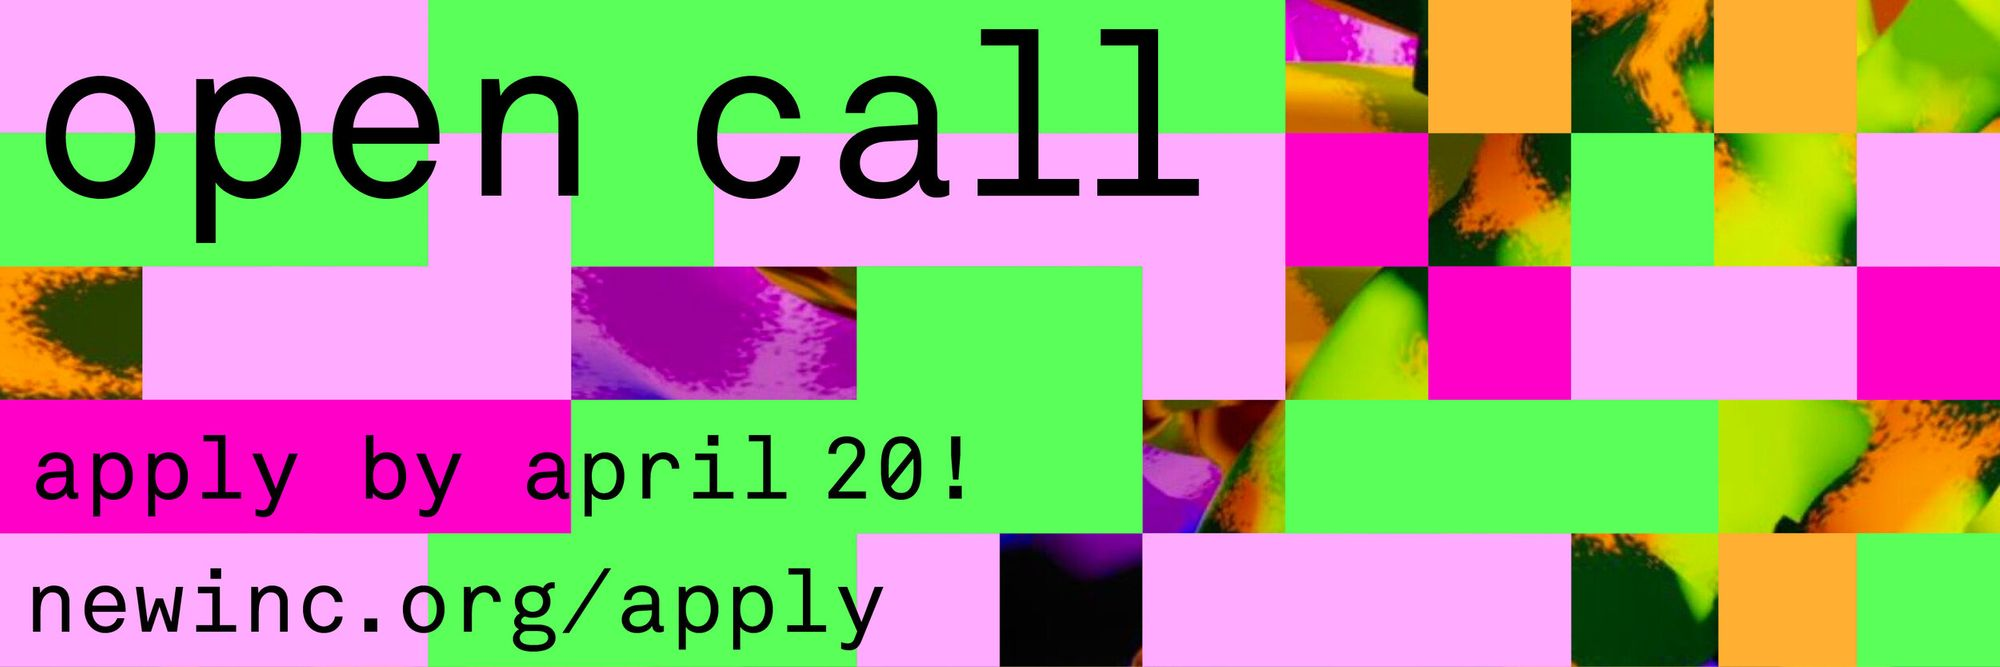 apply by april 20 for NEW INC's open call